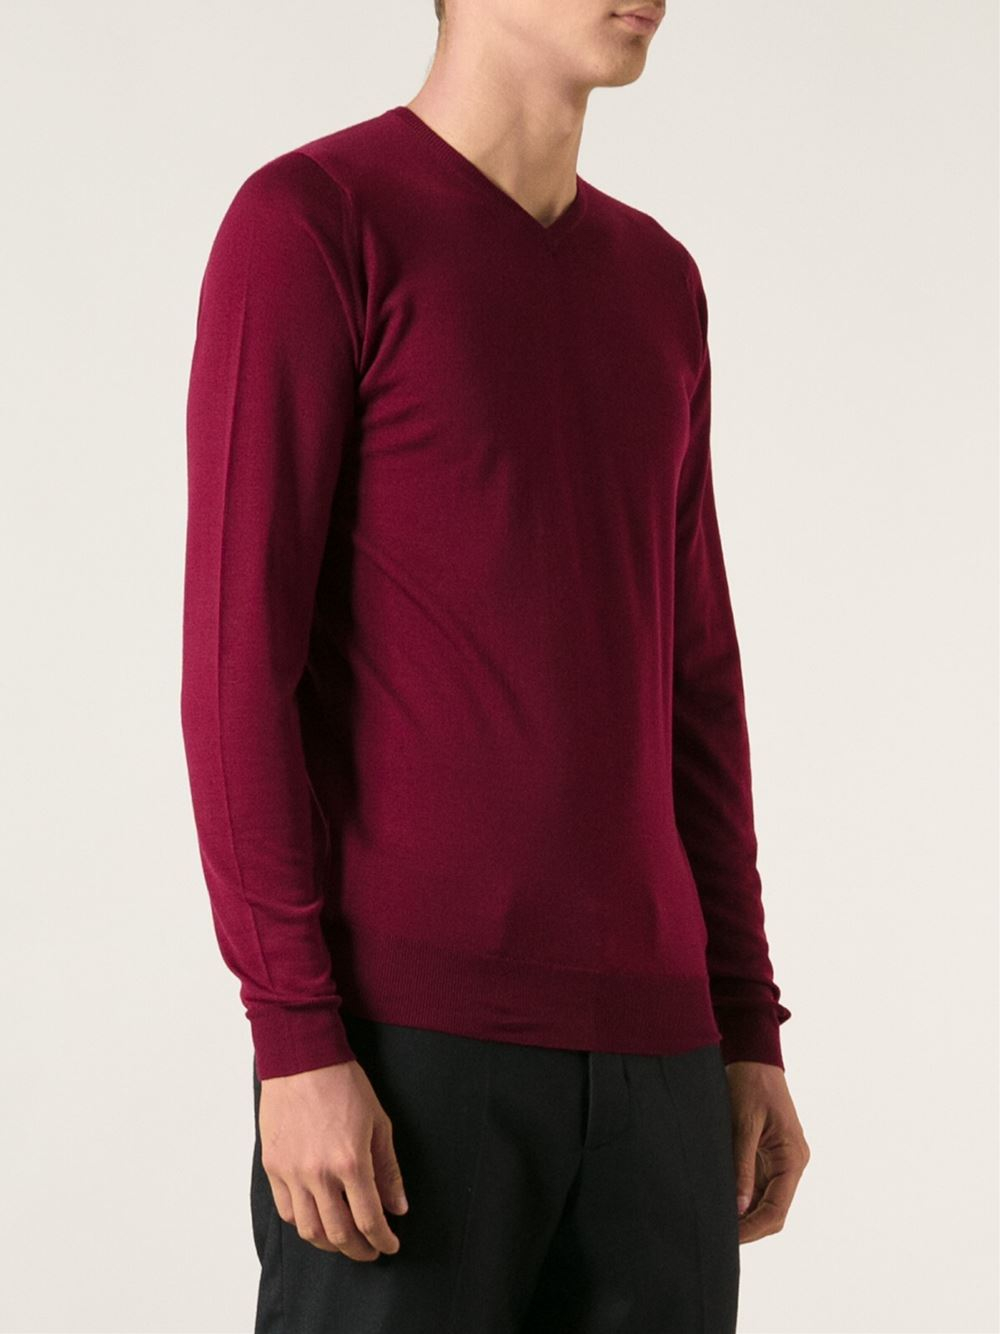 John smedley Fitted Sweater in Red for Men | Lyst